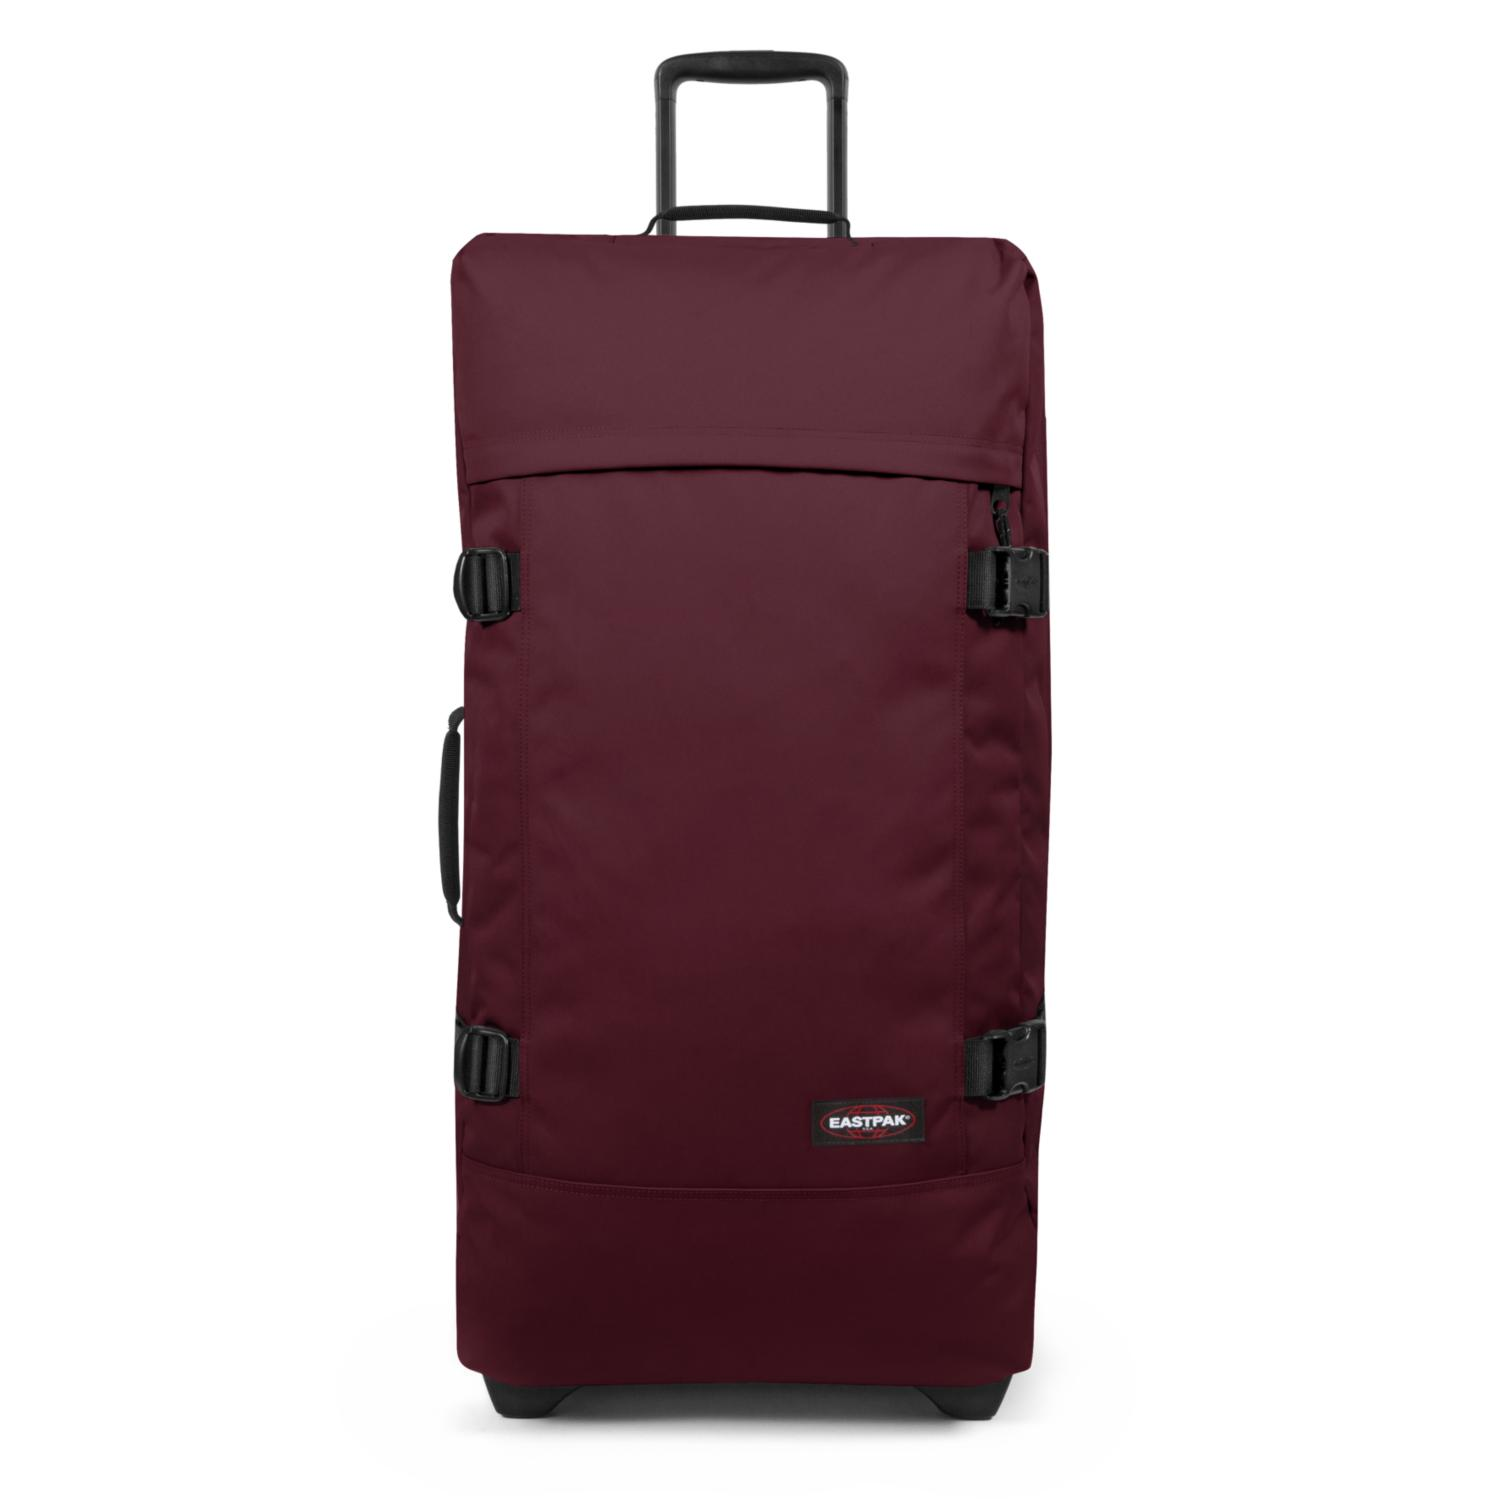 Eastpak Trolley Tranverz L Design Luxury Merlote (bordeaux rot)